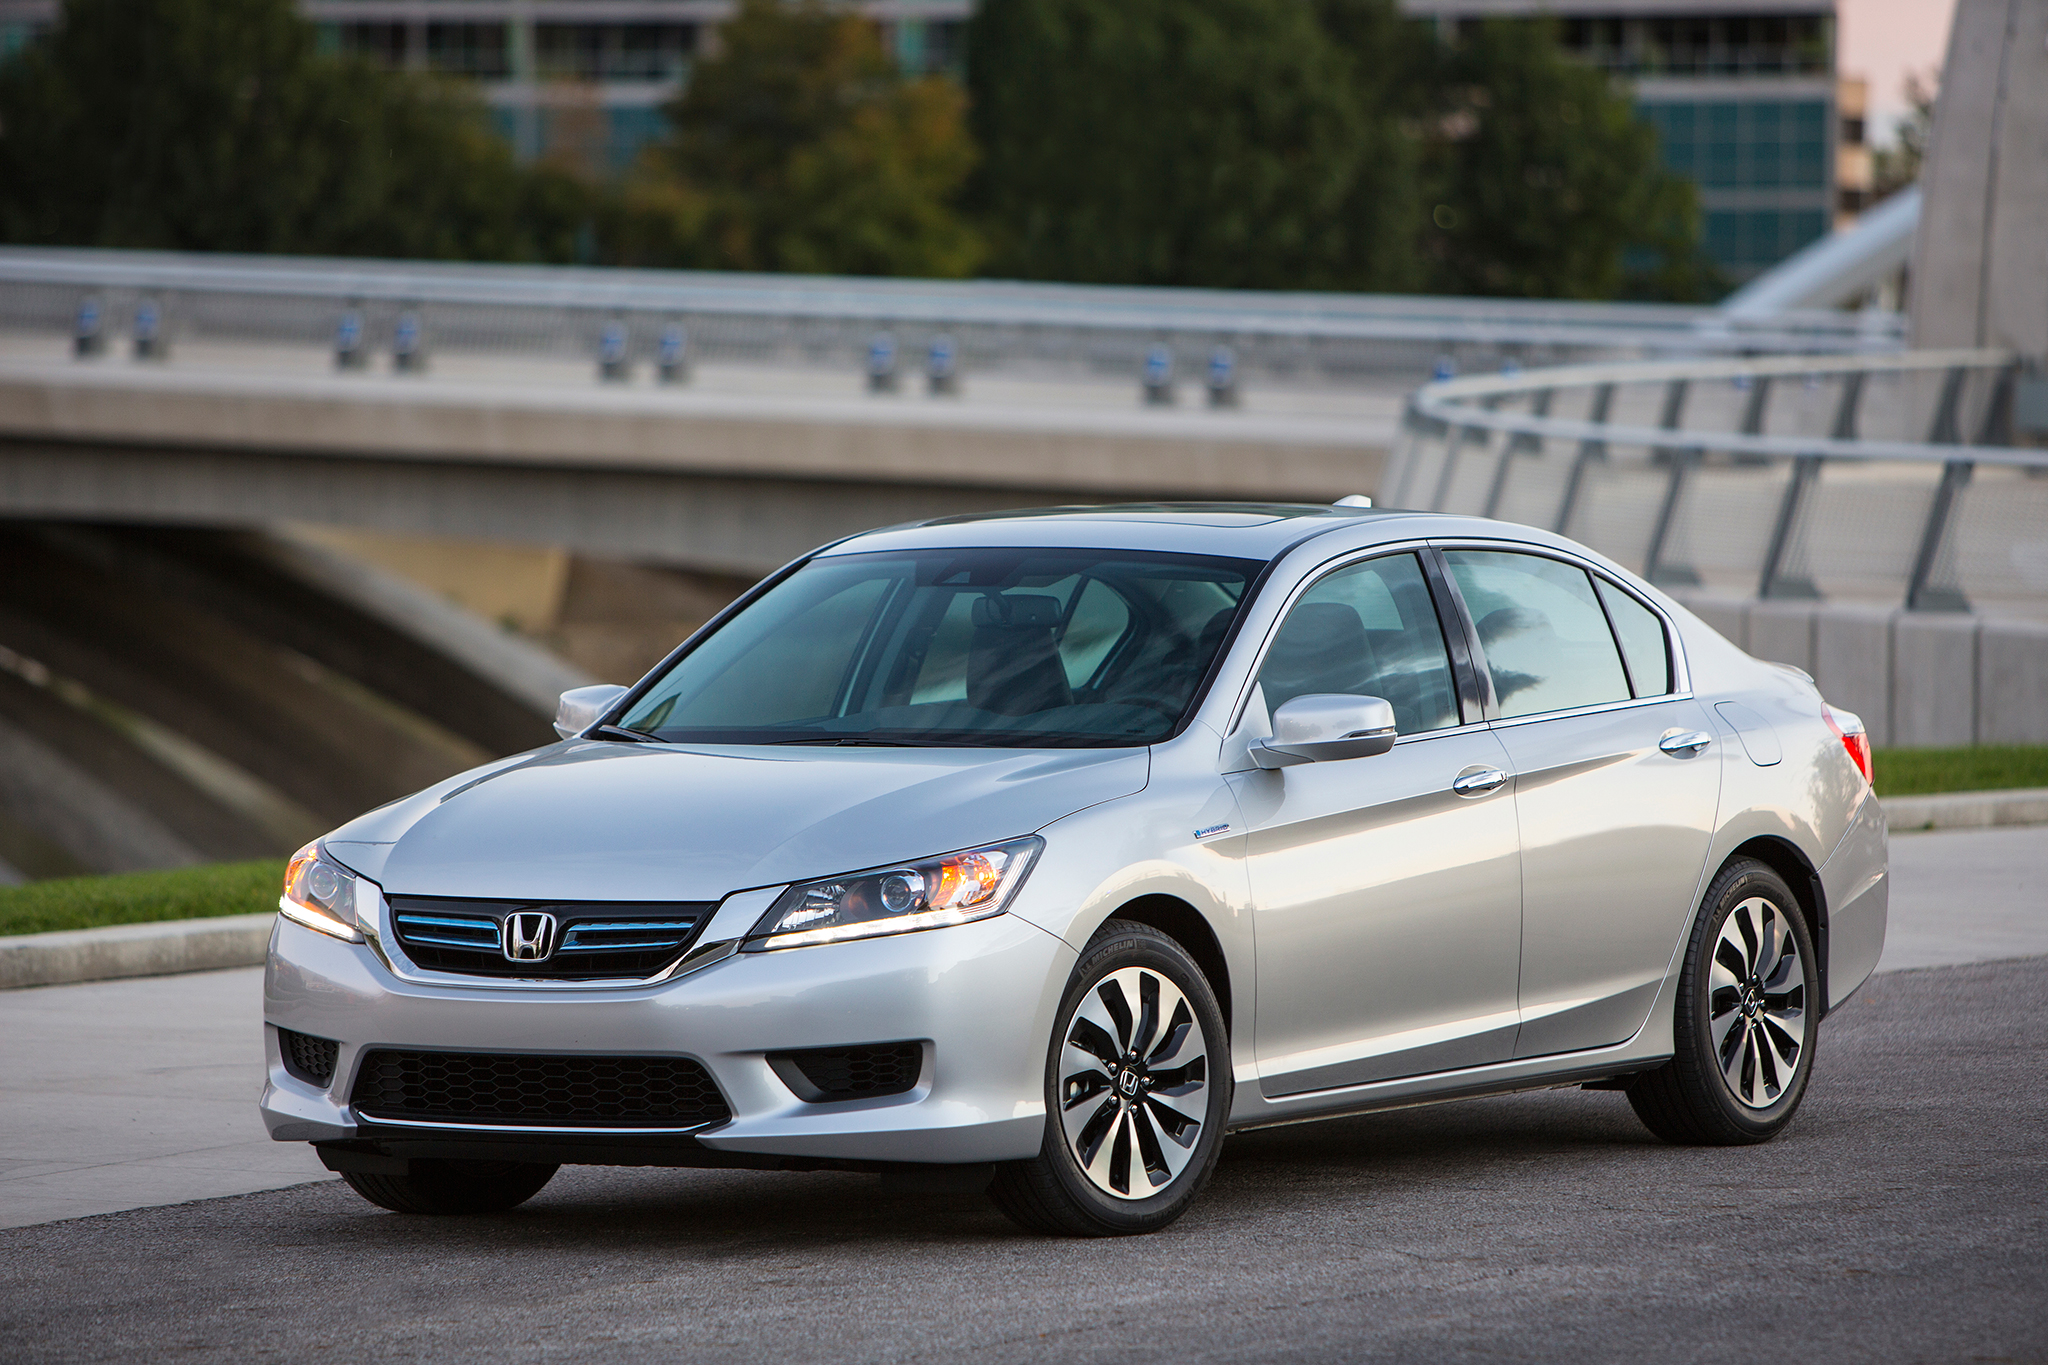 Honda Accord Hybrid #8